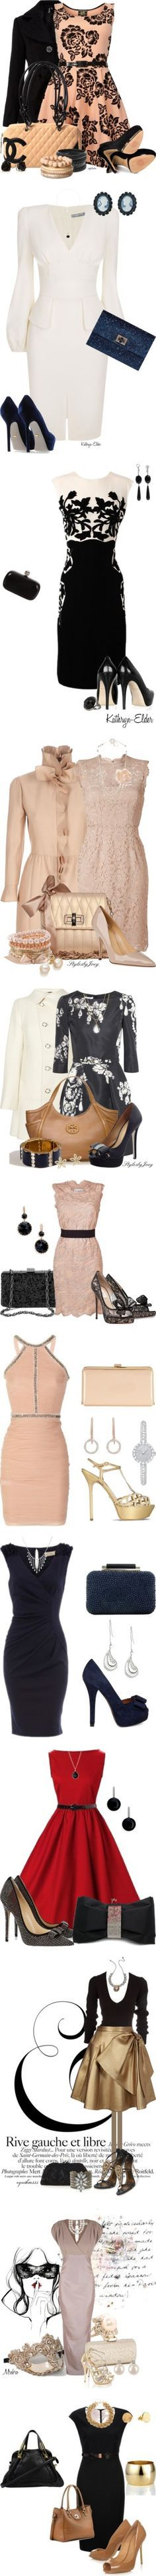 Before I die I want to wear these gorgeous clothes!!!!